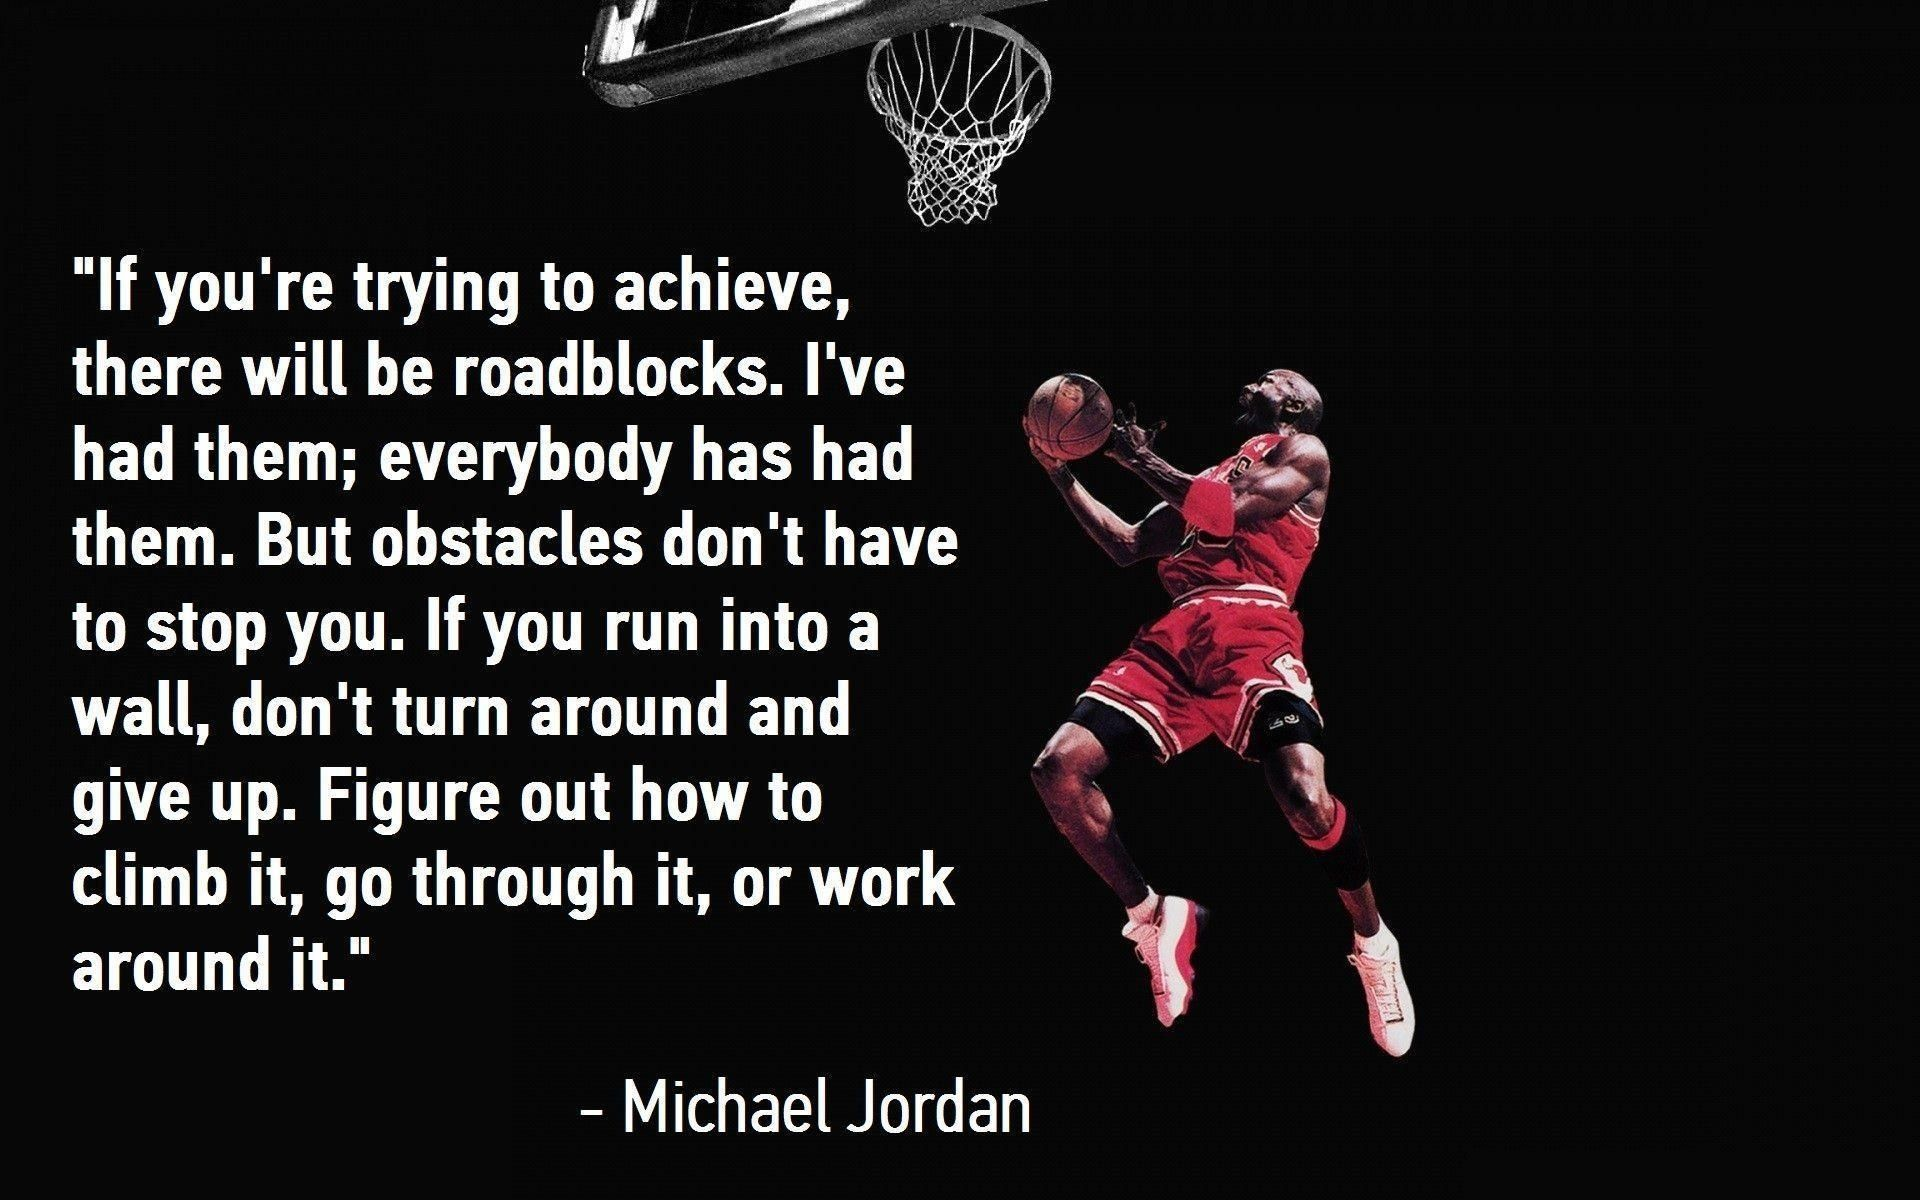 Michael Jordan Quotes Iphone Wallpaper Download Popular Michael Jordan Quotes Iphone Wallpa Jordan Quotes Michael Jordan Quotes Inspirational Quotes Pictures